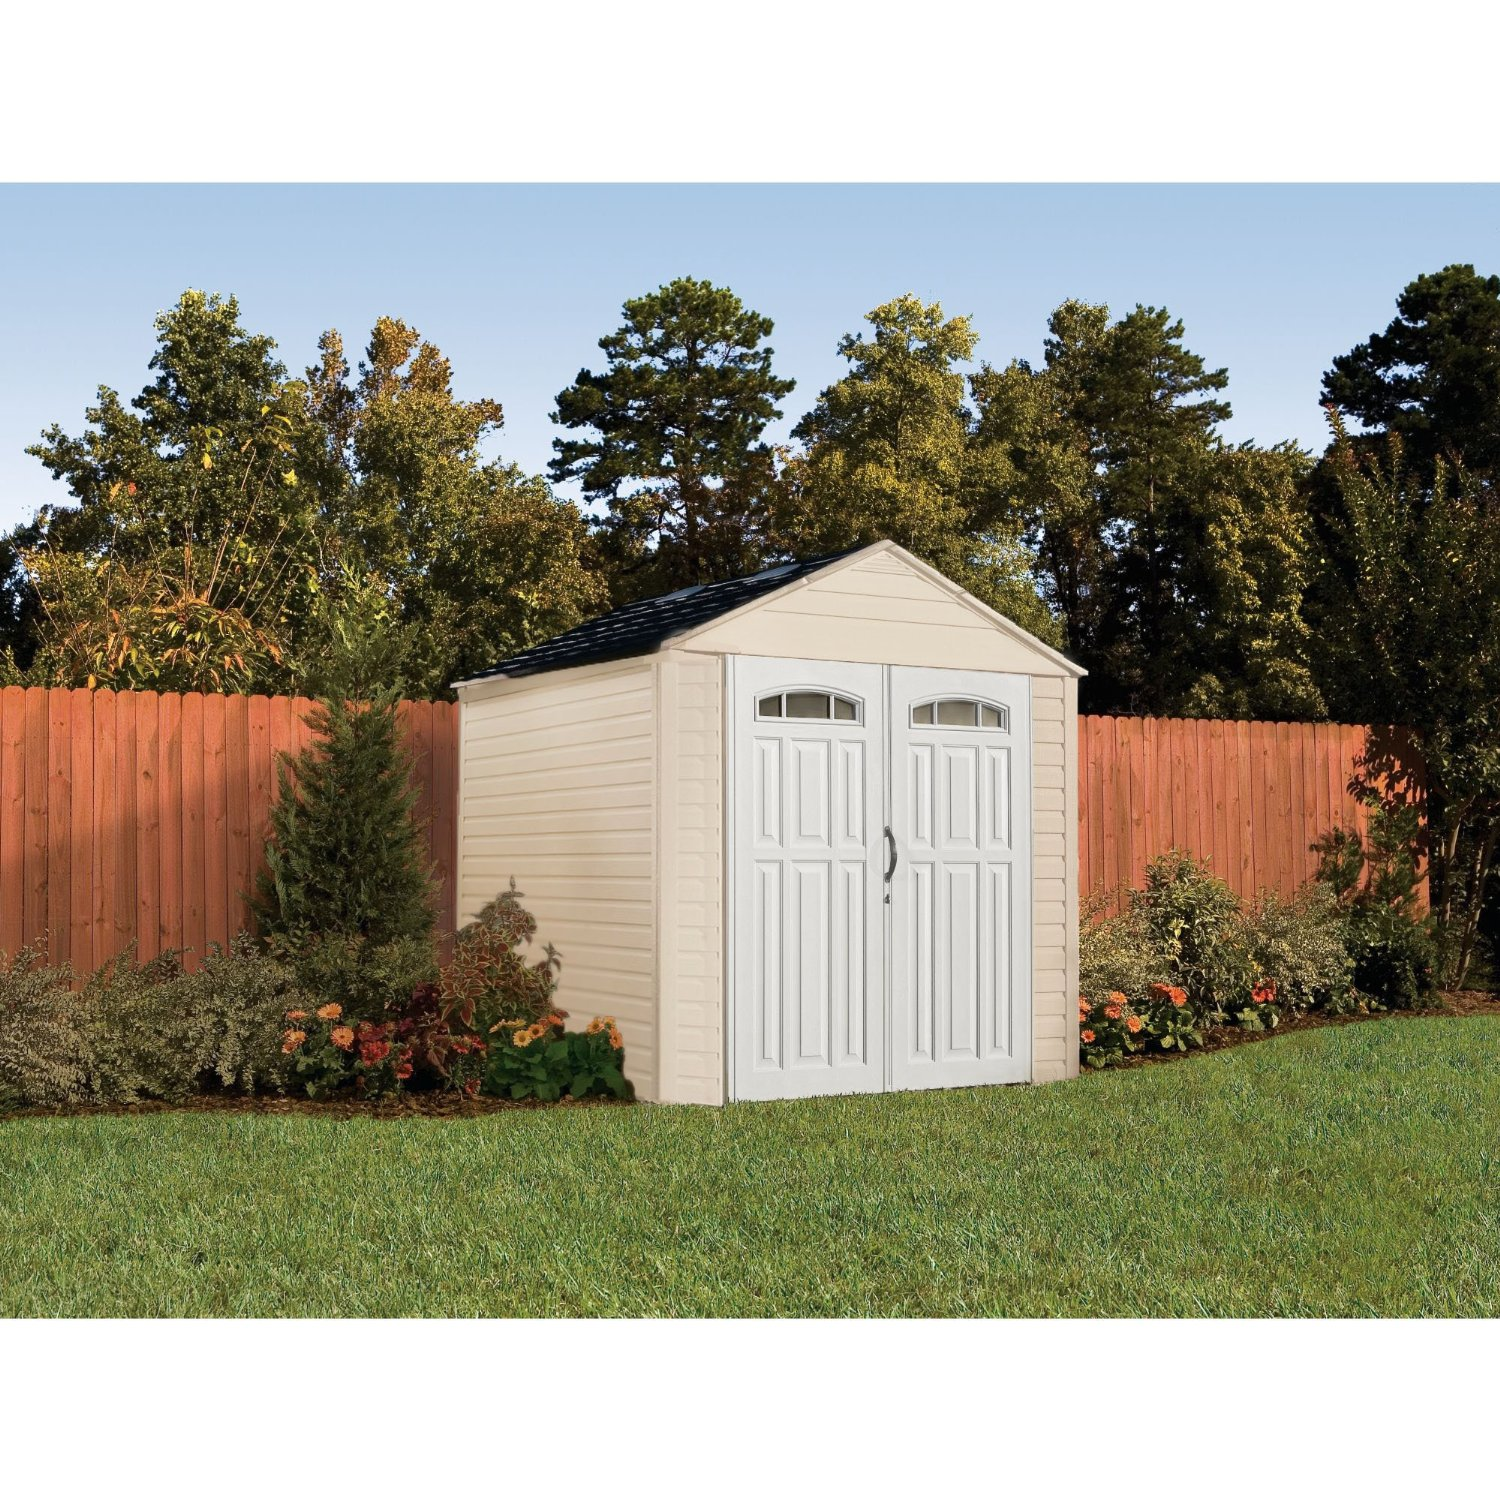 roughneck garden cubic gable dp ca sheds ft shed storage horizontal amazon patio lawn rubbermaid